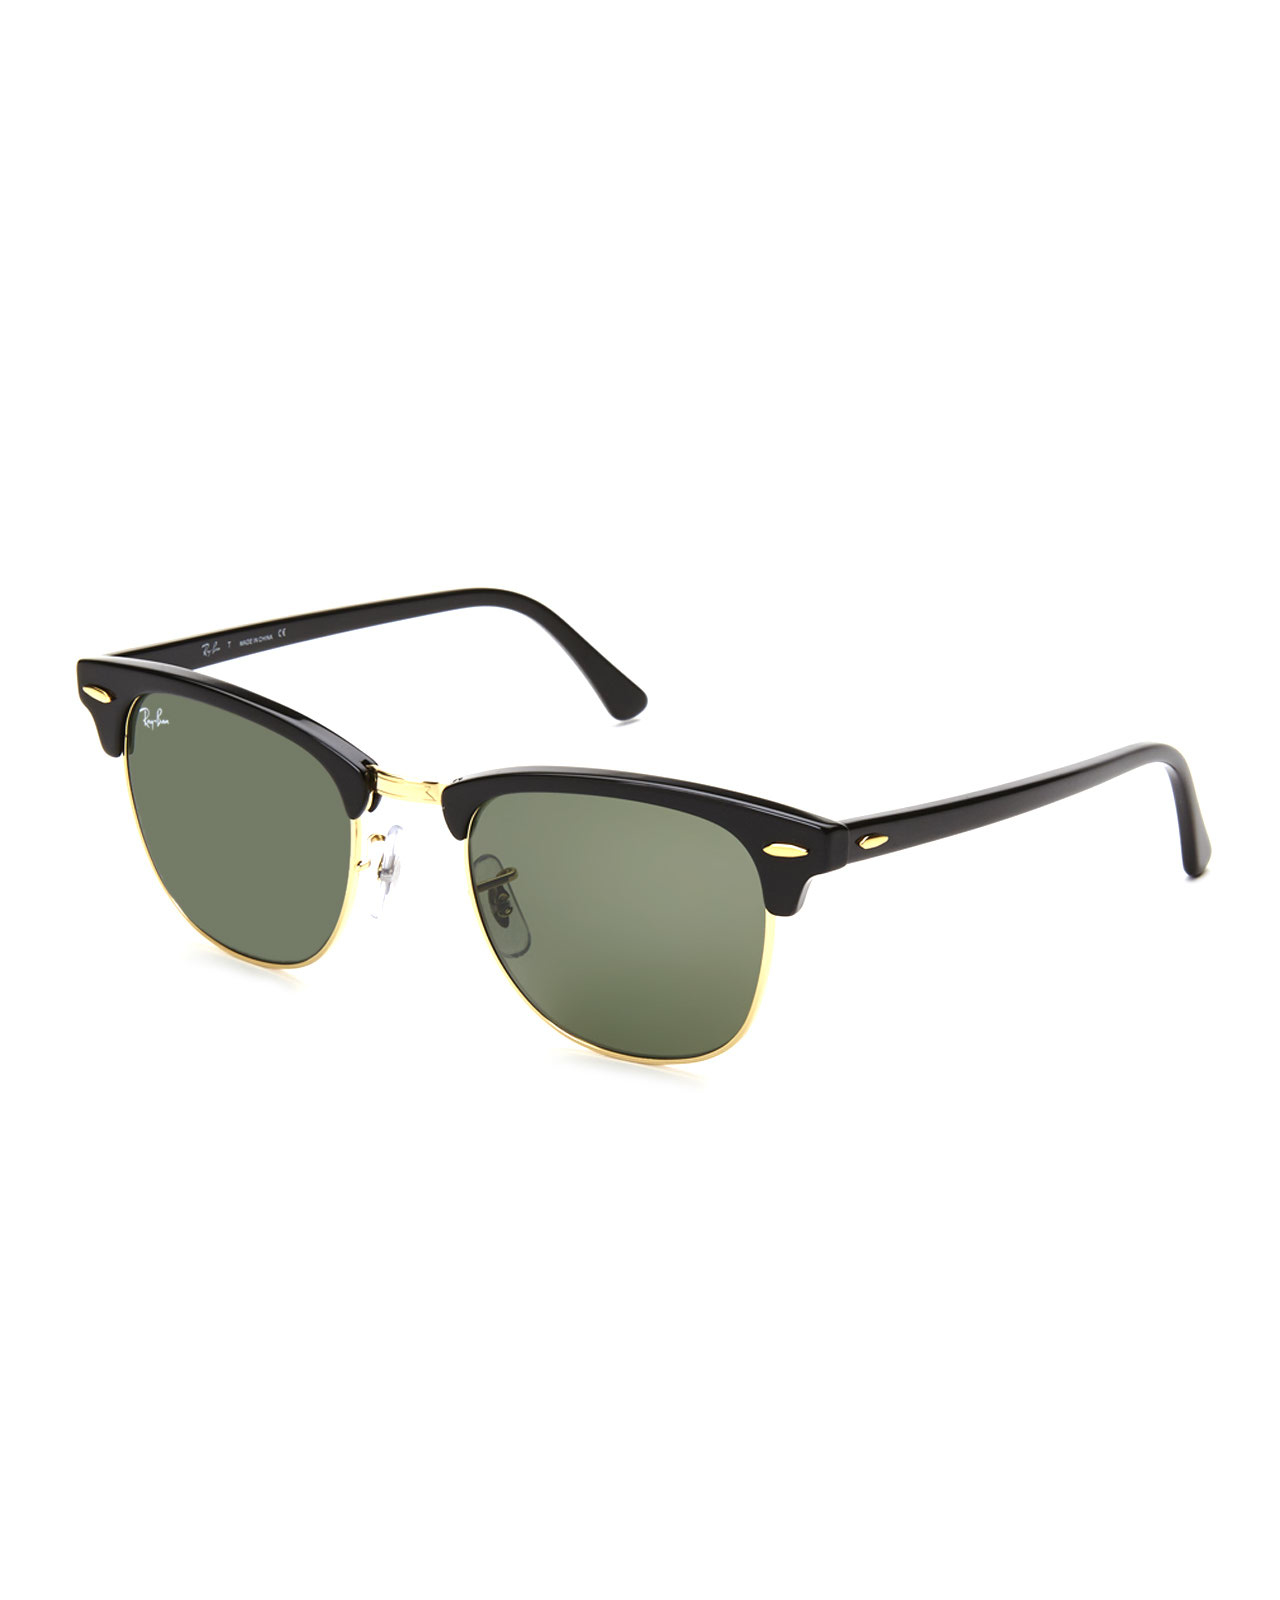 ray ban sunglasses black gold  ray ban sunglasses black and gold